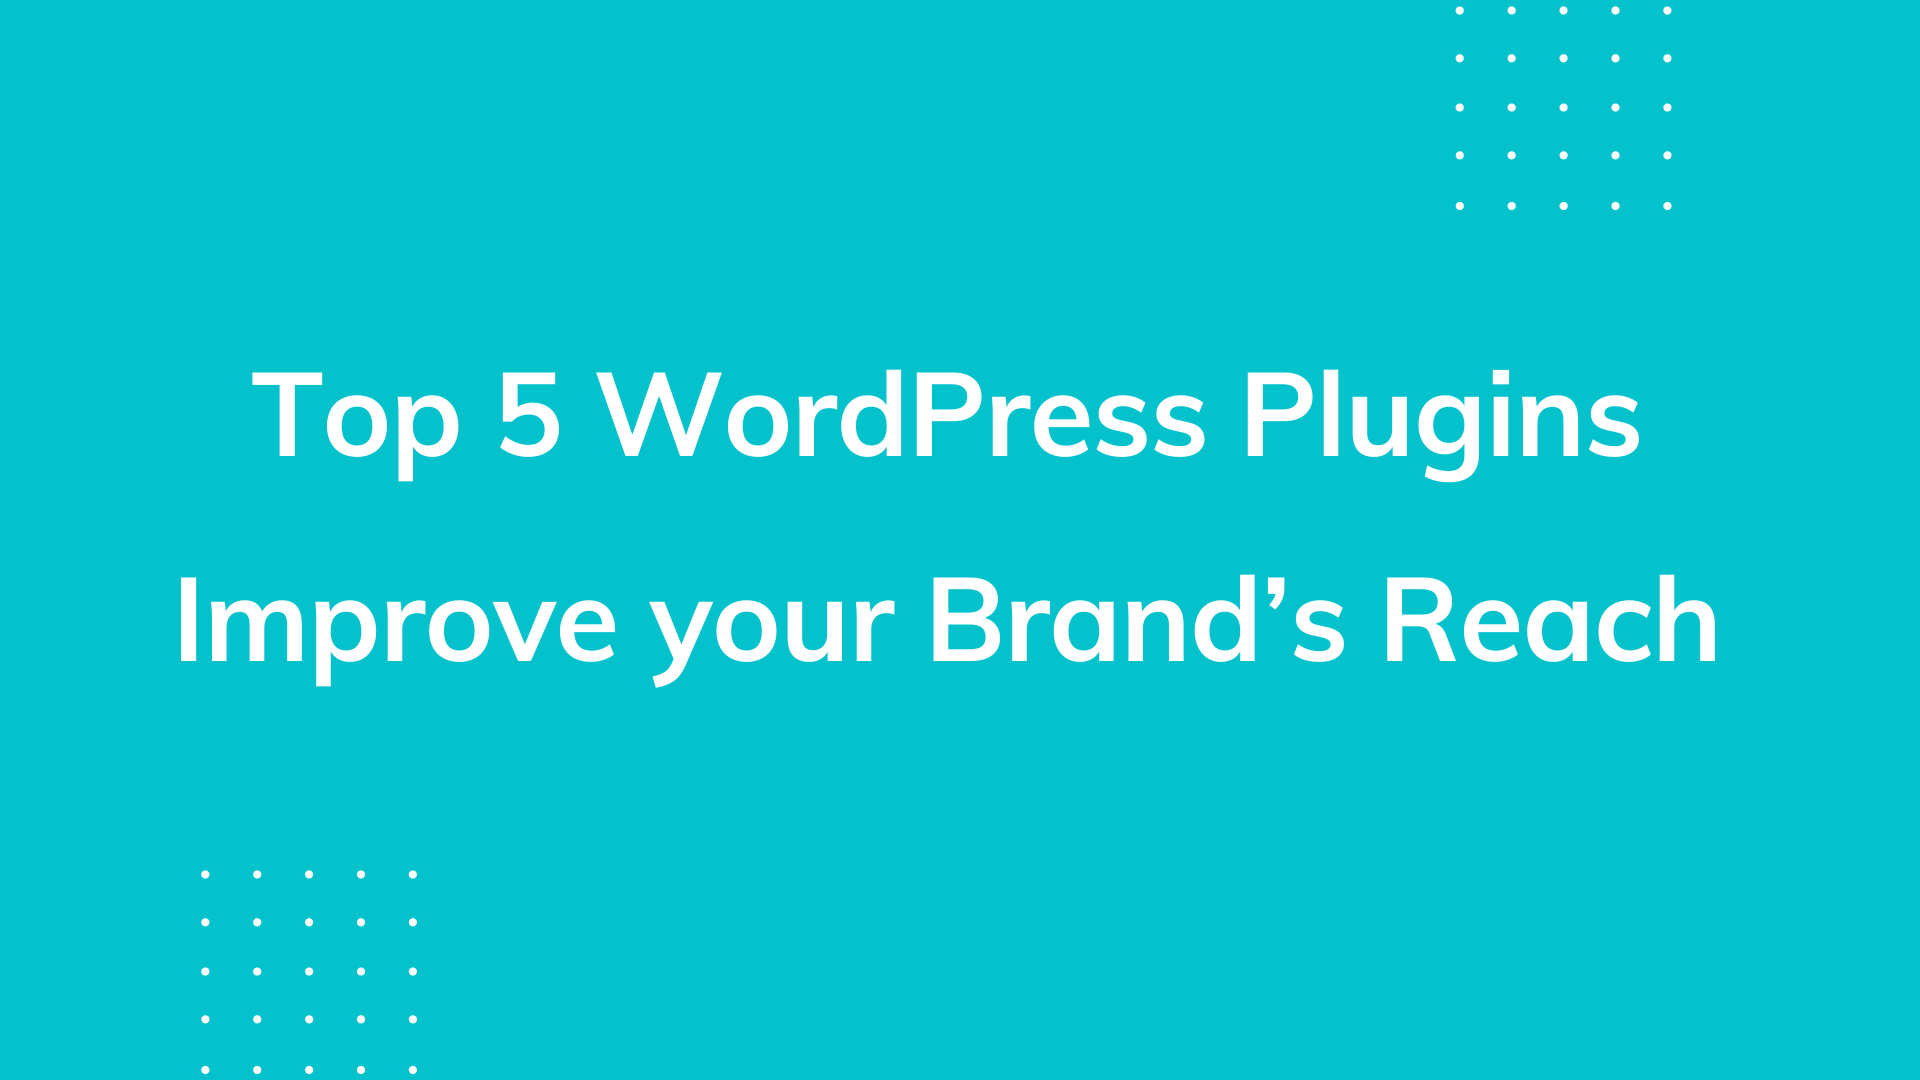 Useful Plugins for Business Promotion and for Increasing Brand's Reach